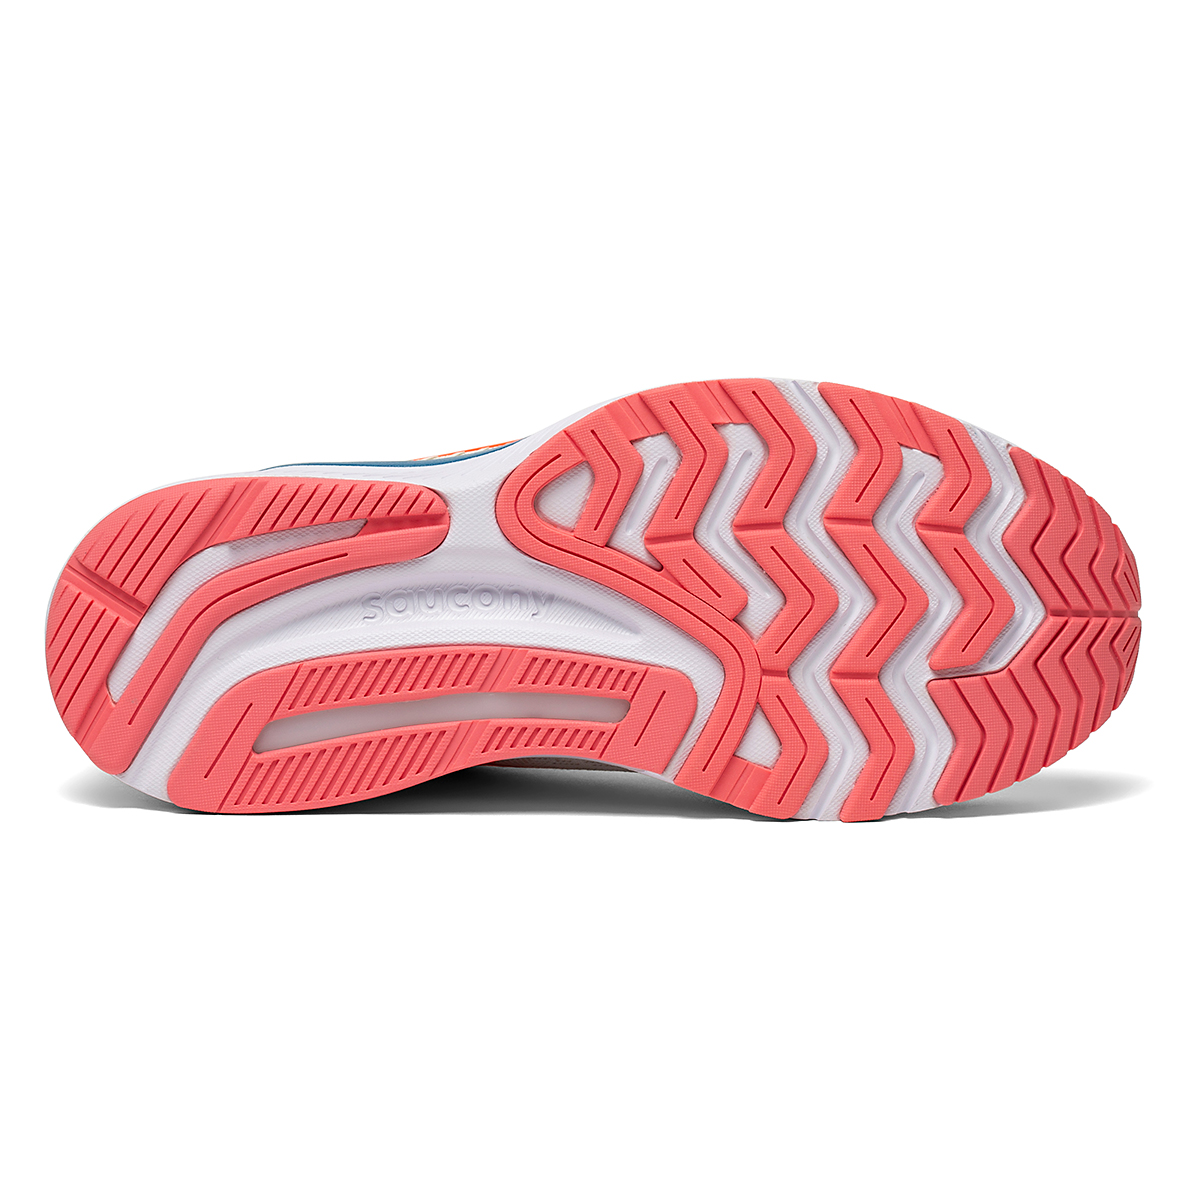 Women's Saucony Guide 14 Running Shoe, , large, image 4